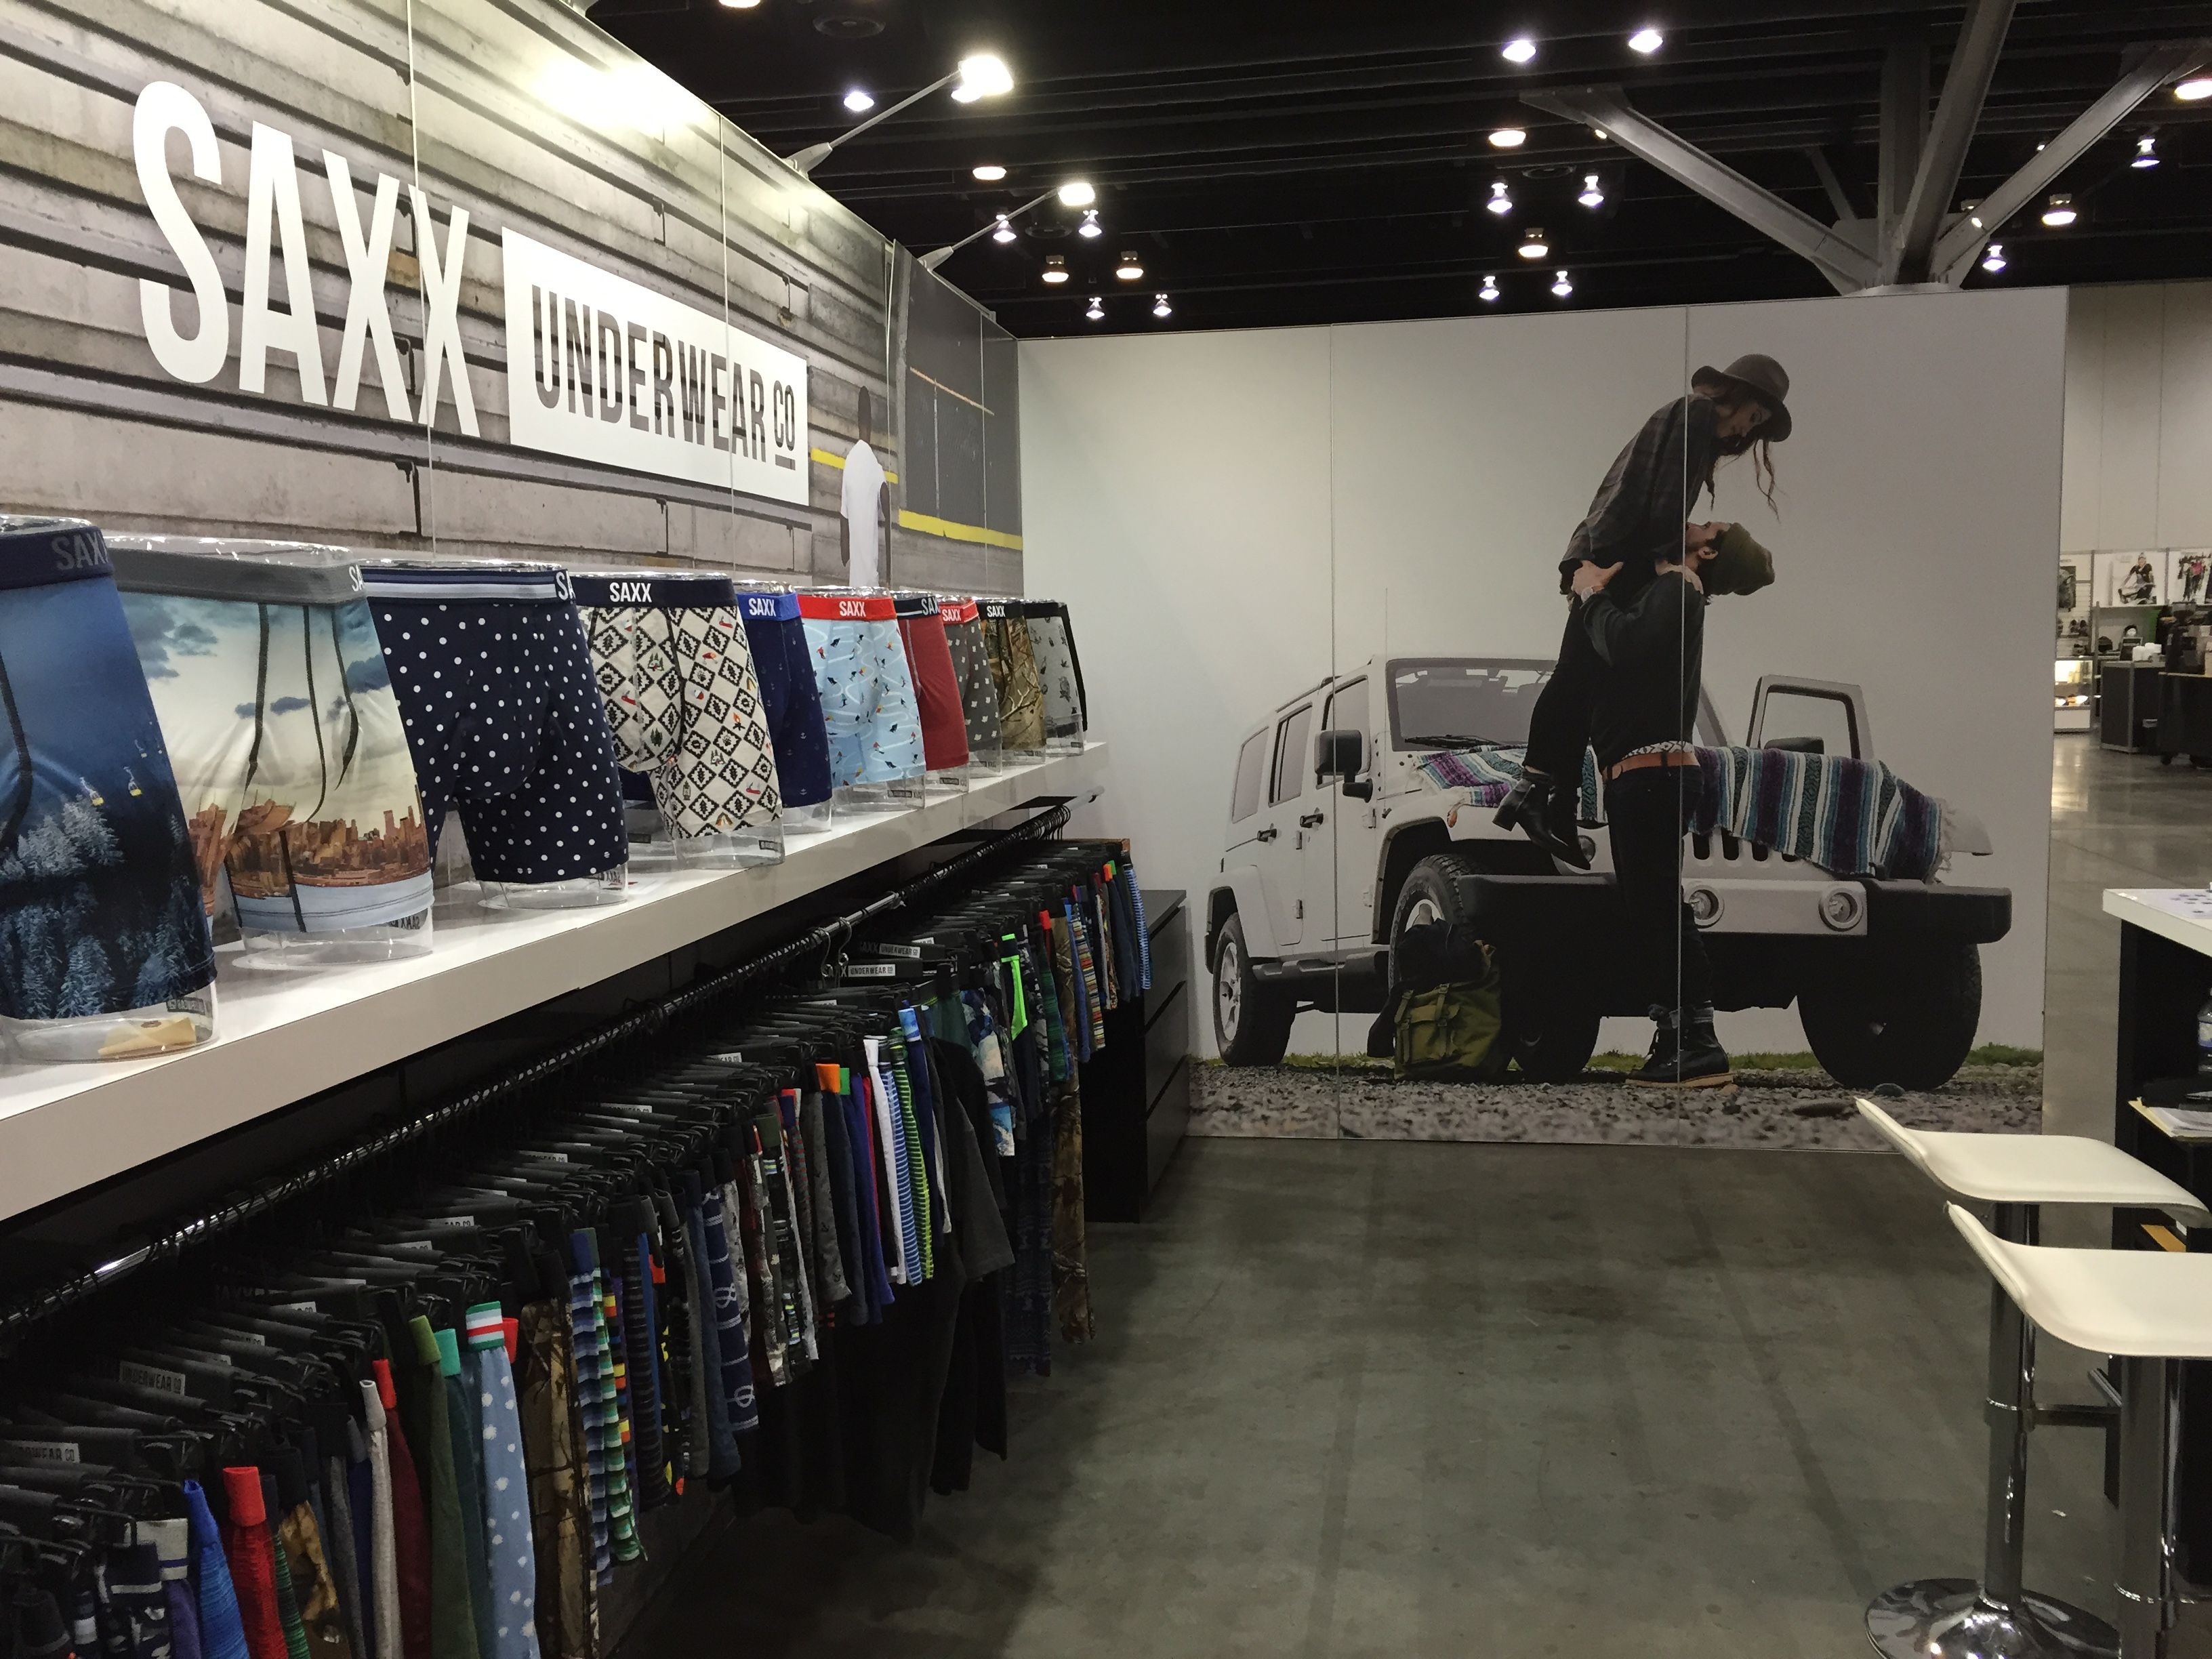 Trade Show Booth Vancouver : Saxx underwear know show vancouver by mackenzie exhibit